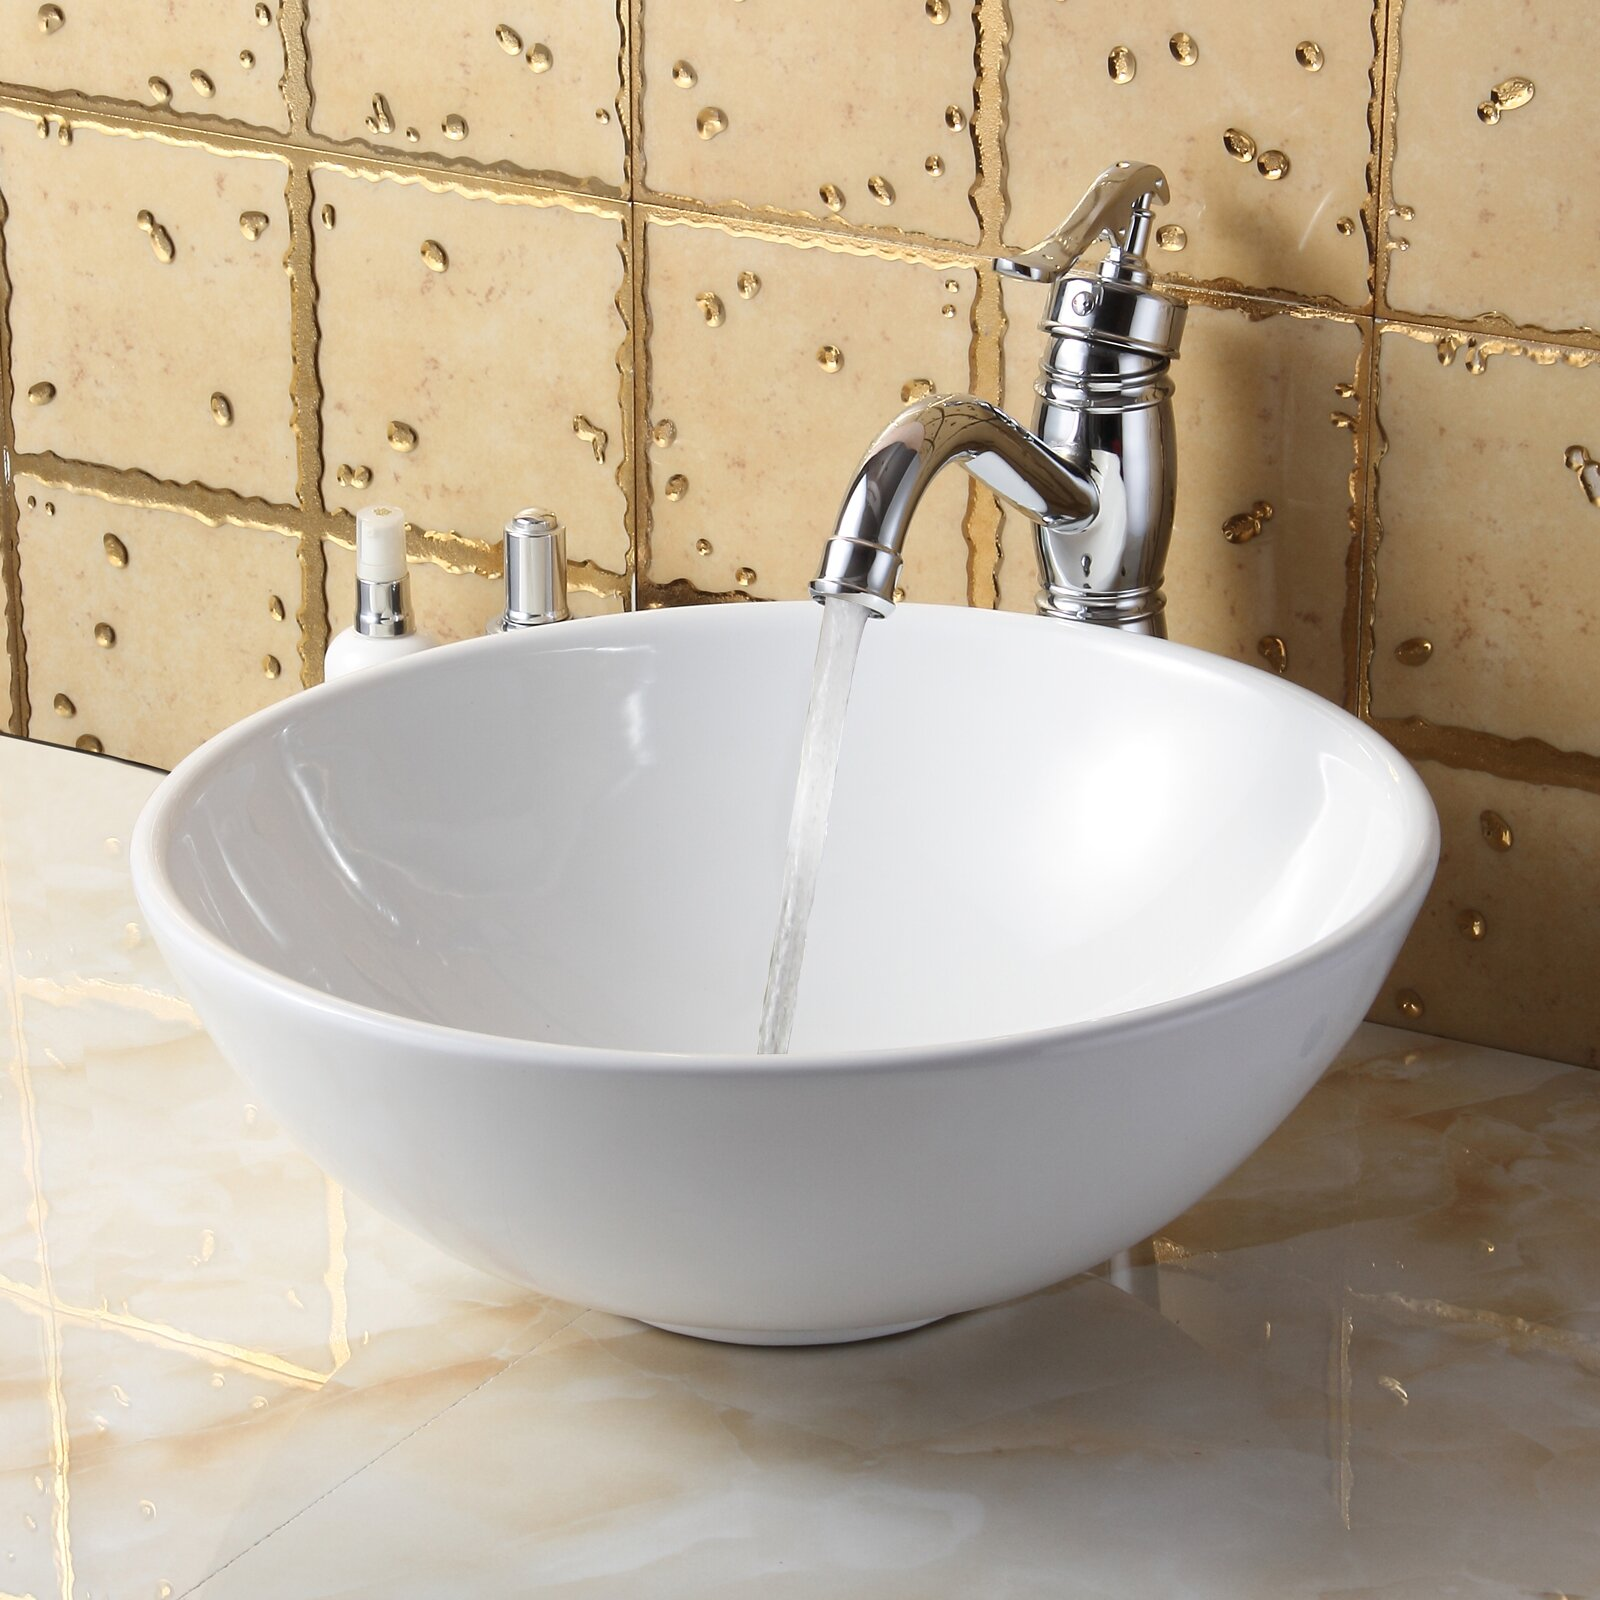 Elite Bathroom Sinks : Elite Ceramic Round Bathroom Sink & Reviews Wayfair Supply